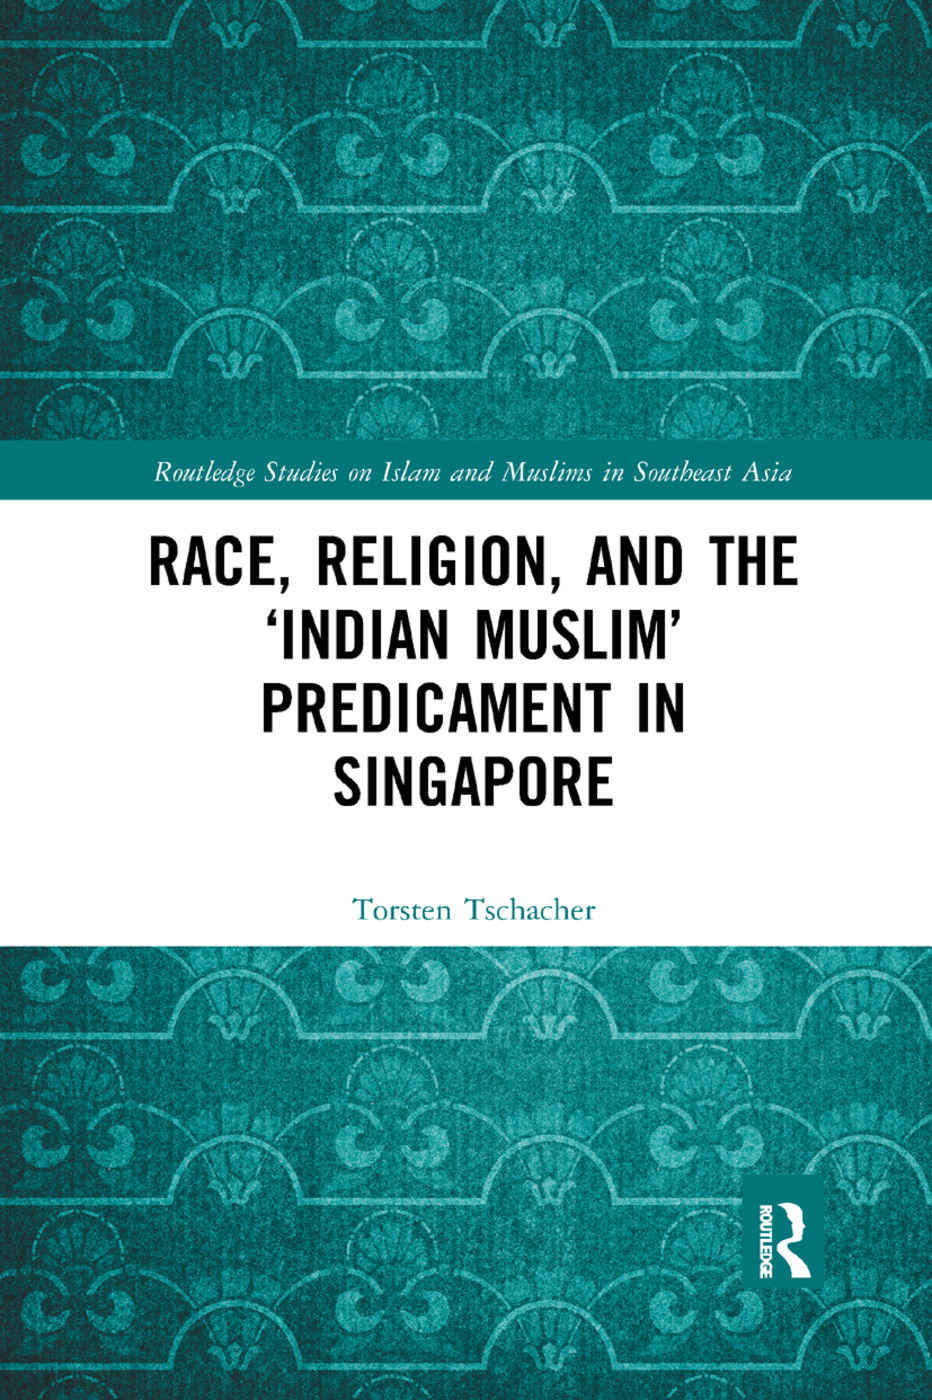 Race, Religion, and the 'Indian Muslim' Predicament in Singapore book cover